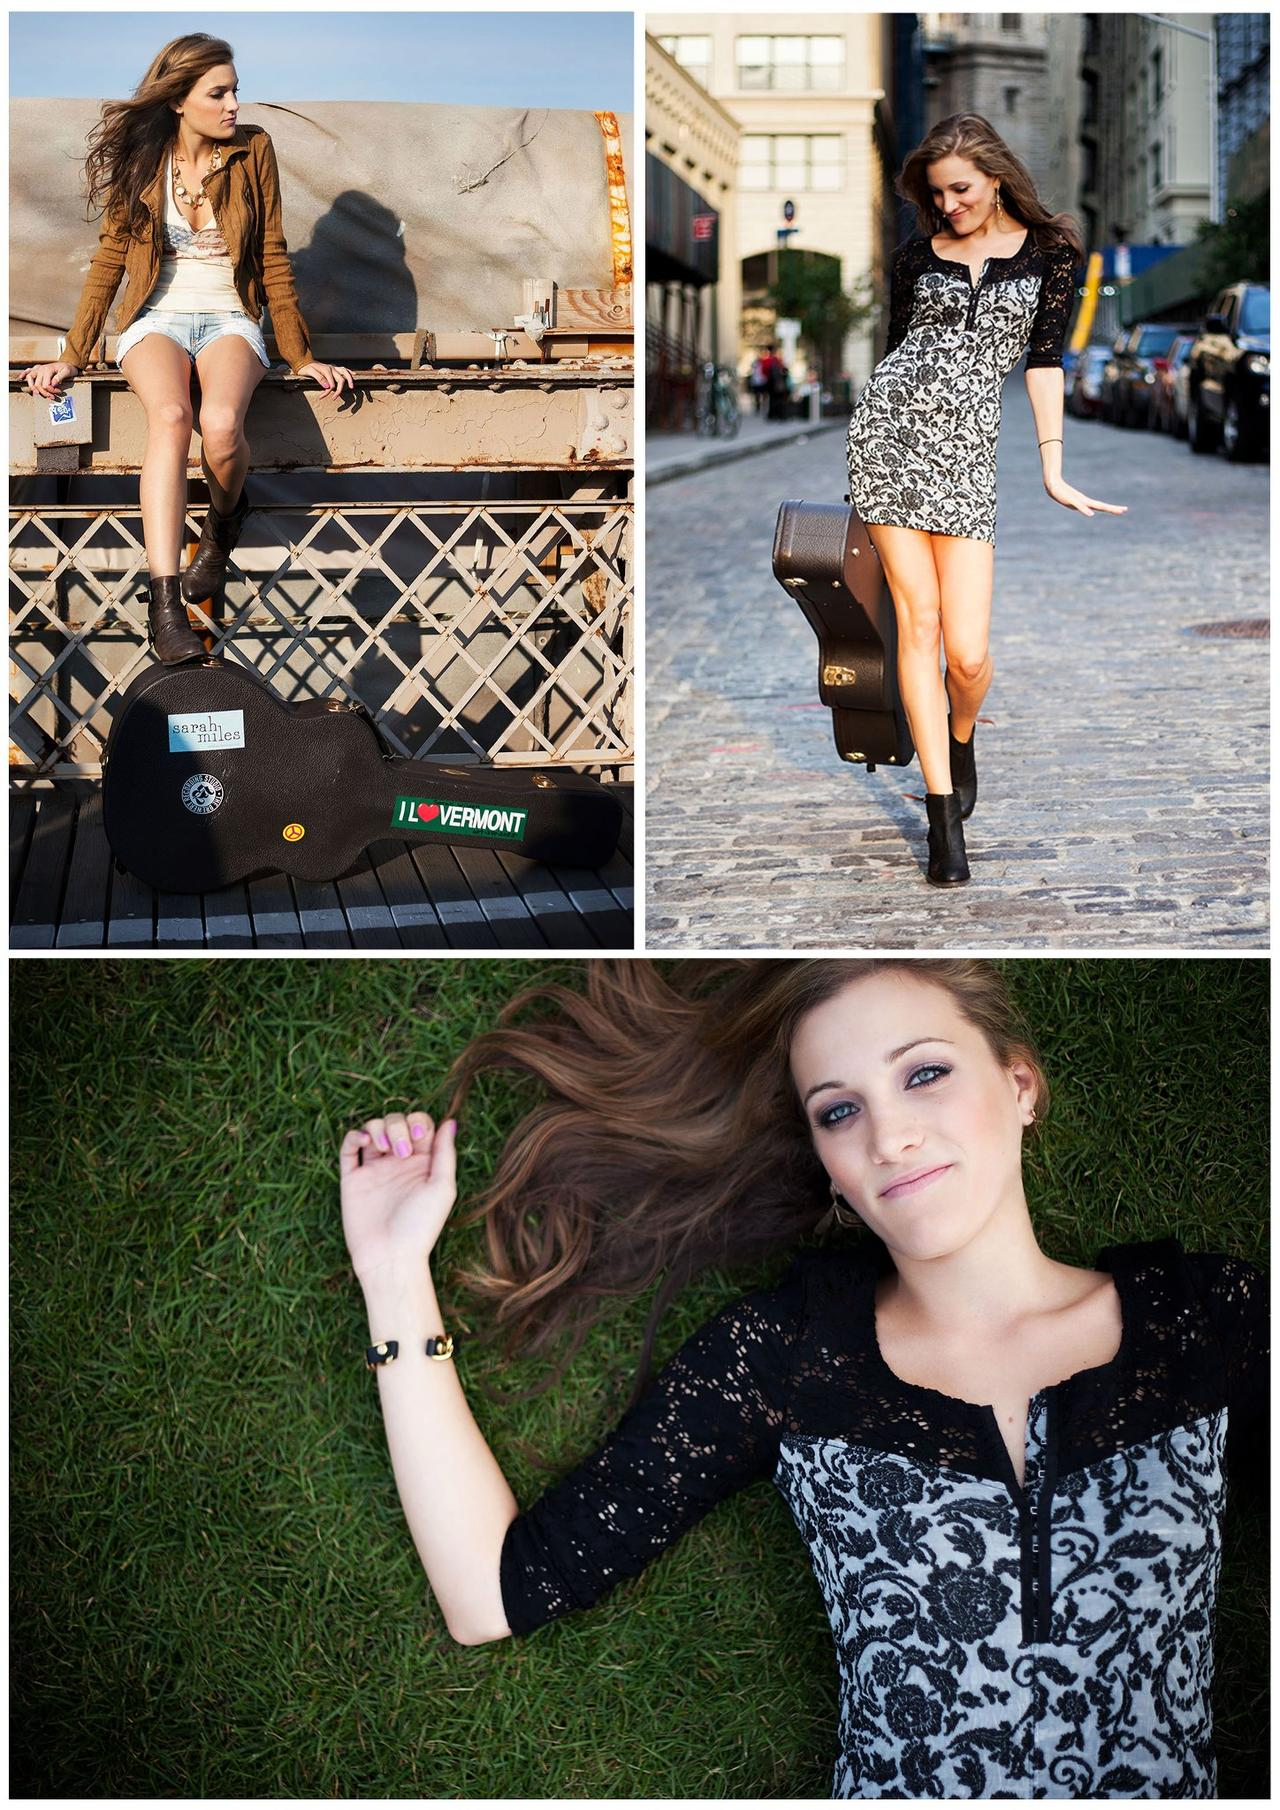 Check out these awesome new photos taken by my good friend Nick Glimenakis!  Such a fun day :)